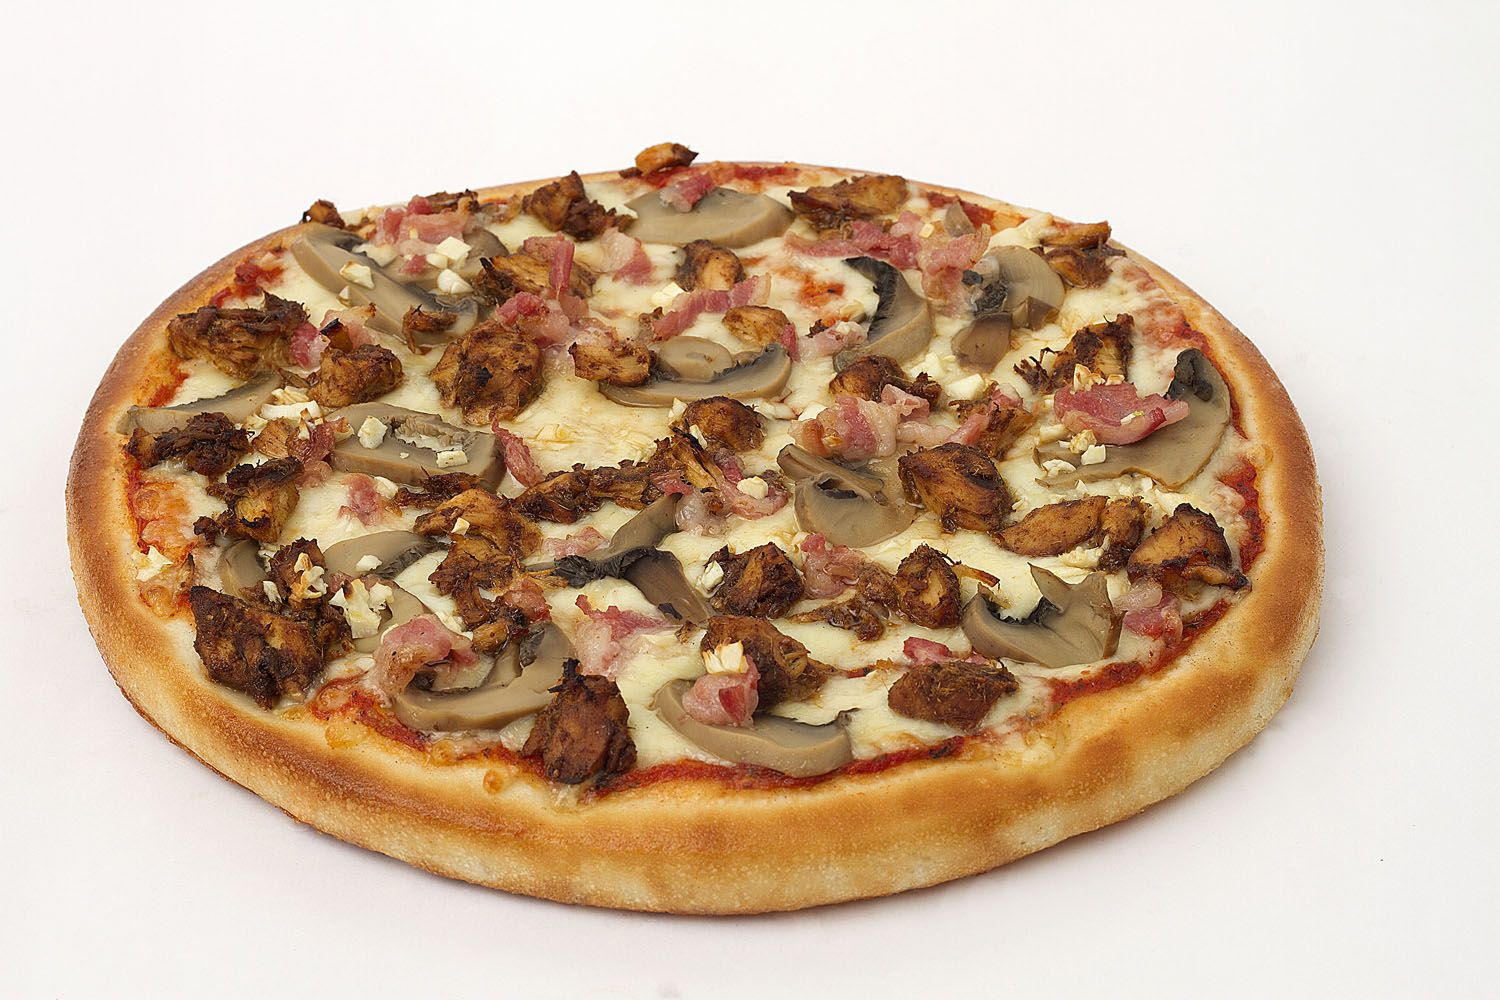 Napolitana - Roasted chicken, bacon, mushroom and garlic. Delicious pizza all the way to the last bite #pizza #smokinjoes #yum #chicken #bacon